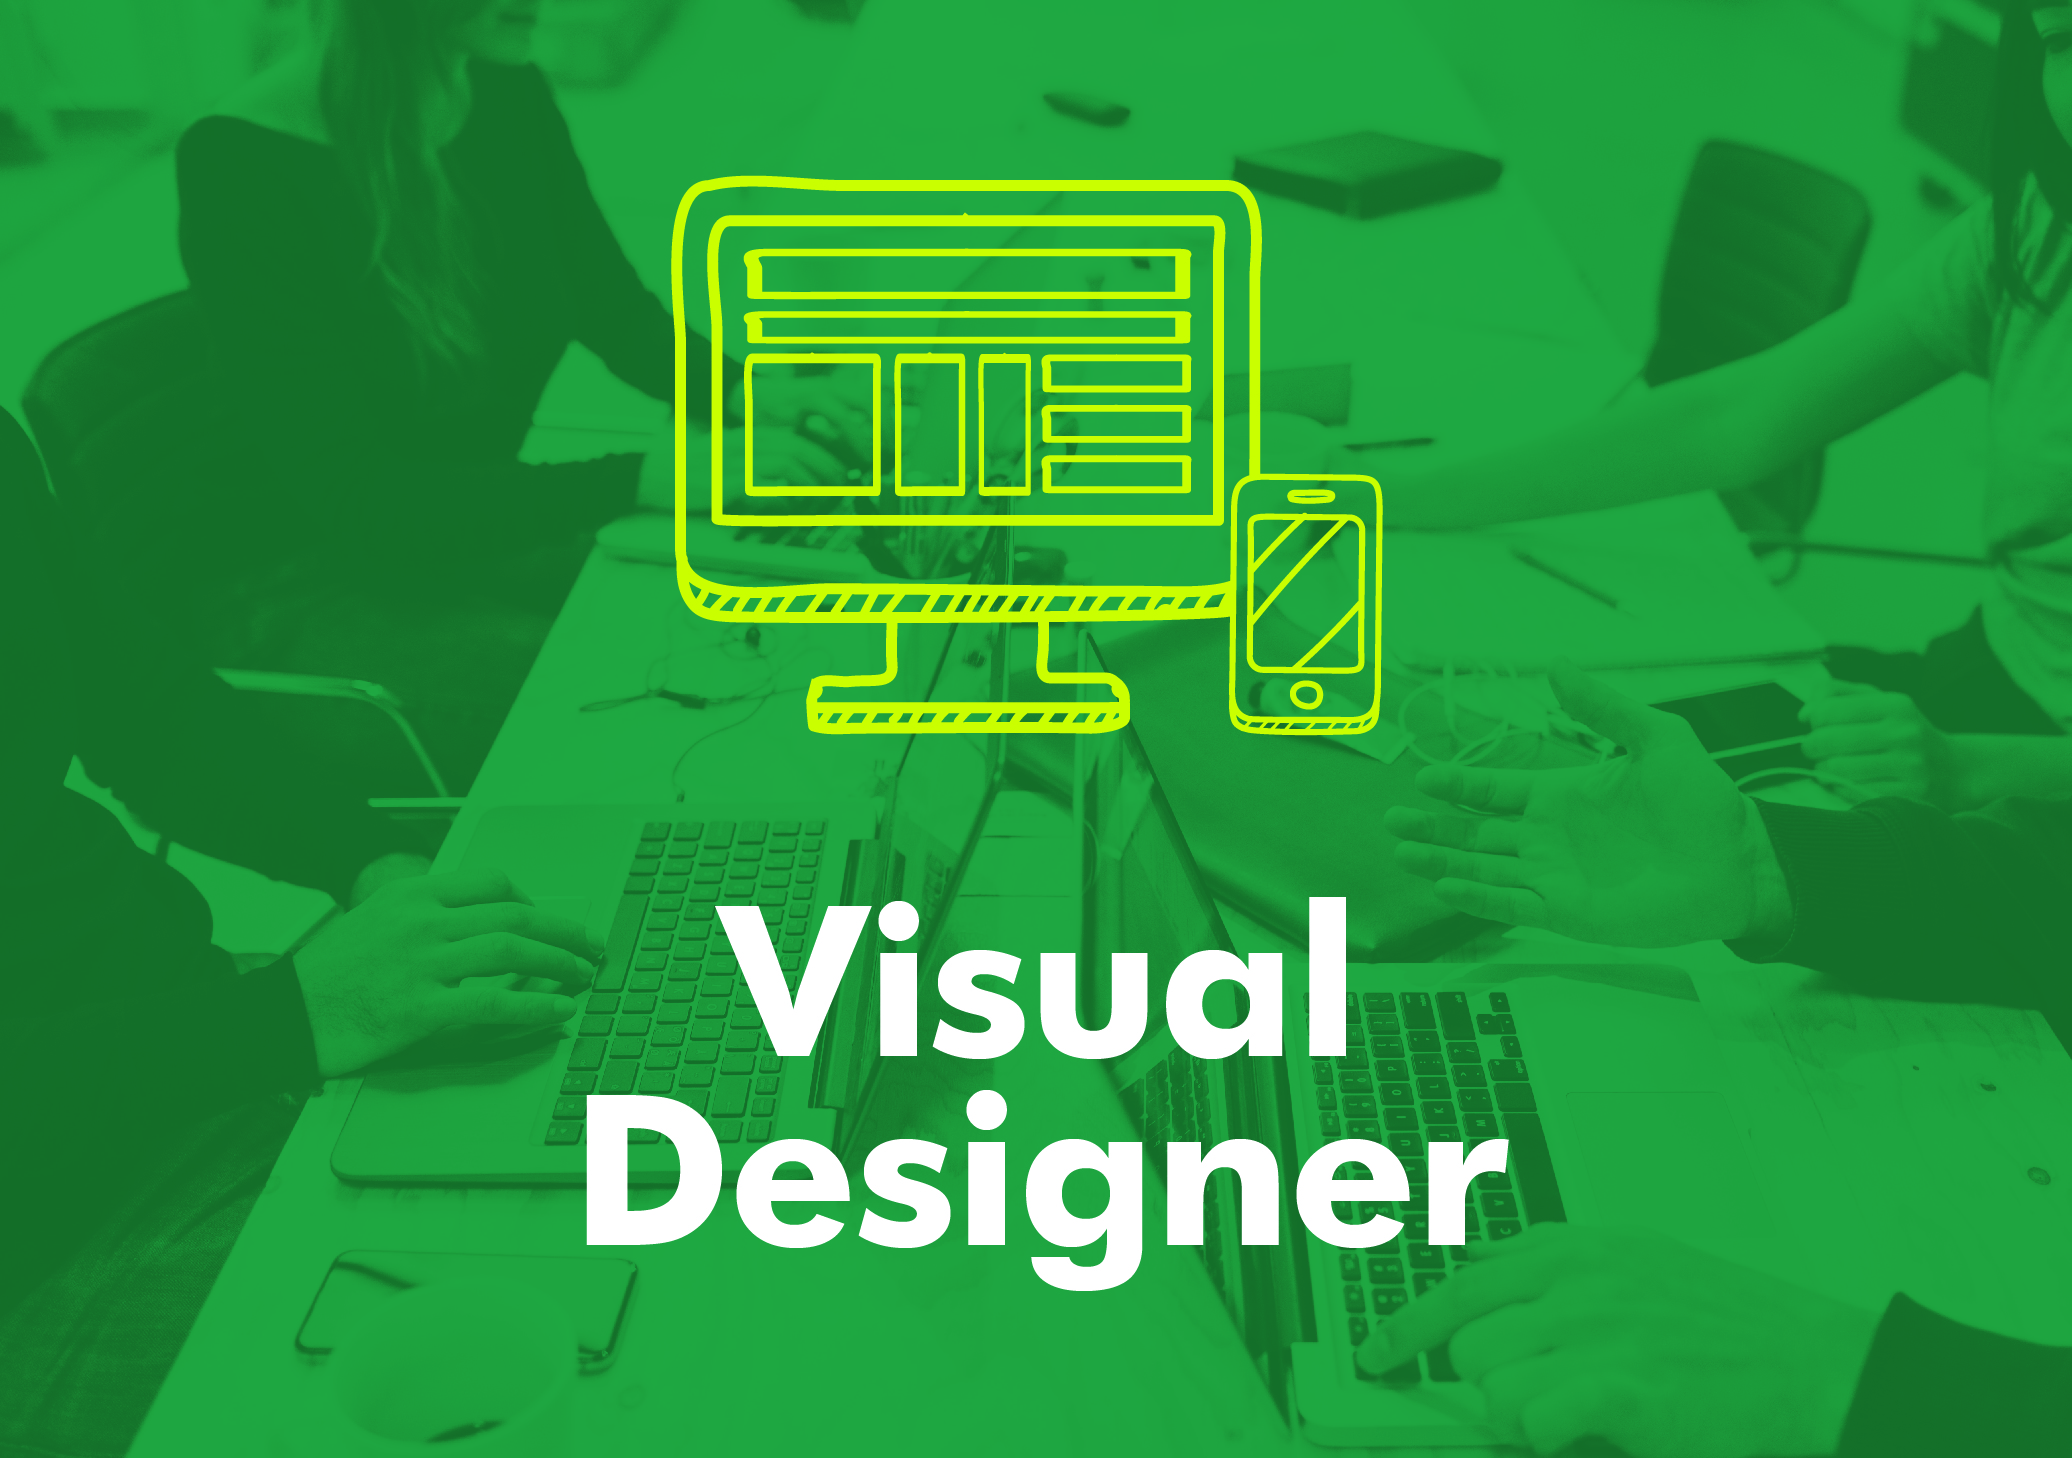 Visual Designer Job Description and Salary Outlook  Robert Half